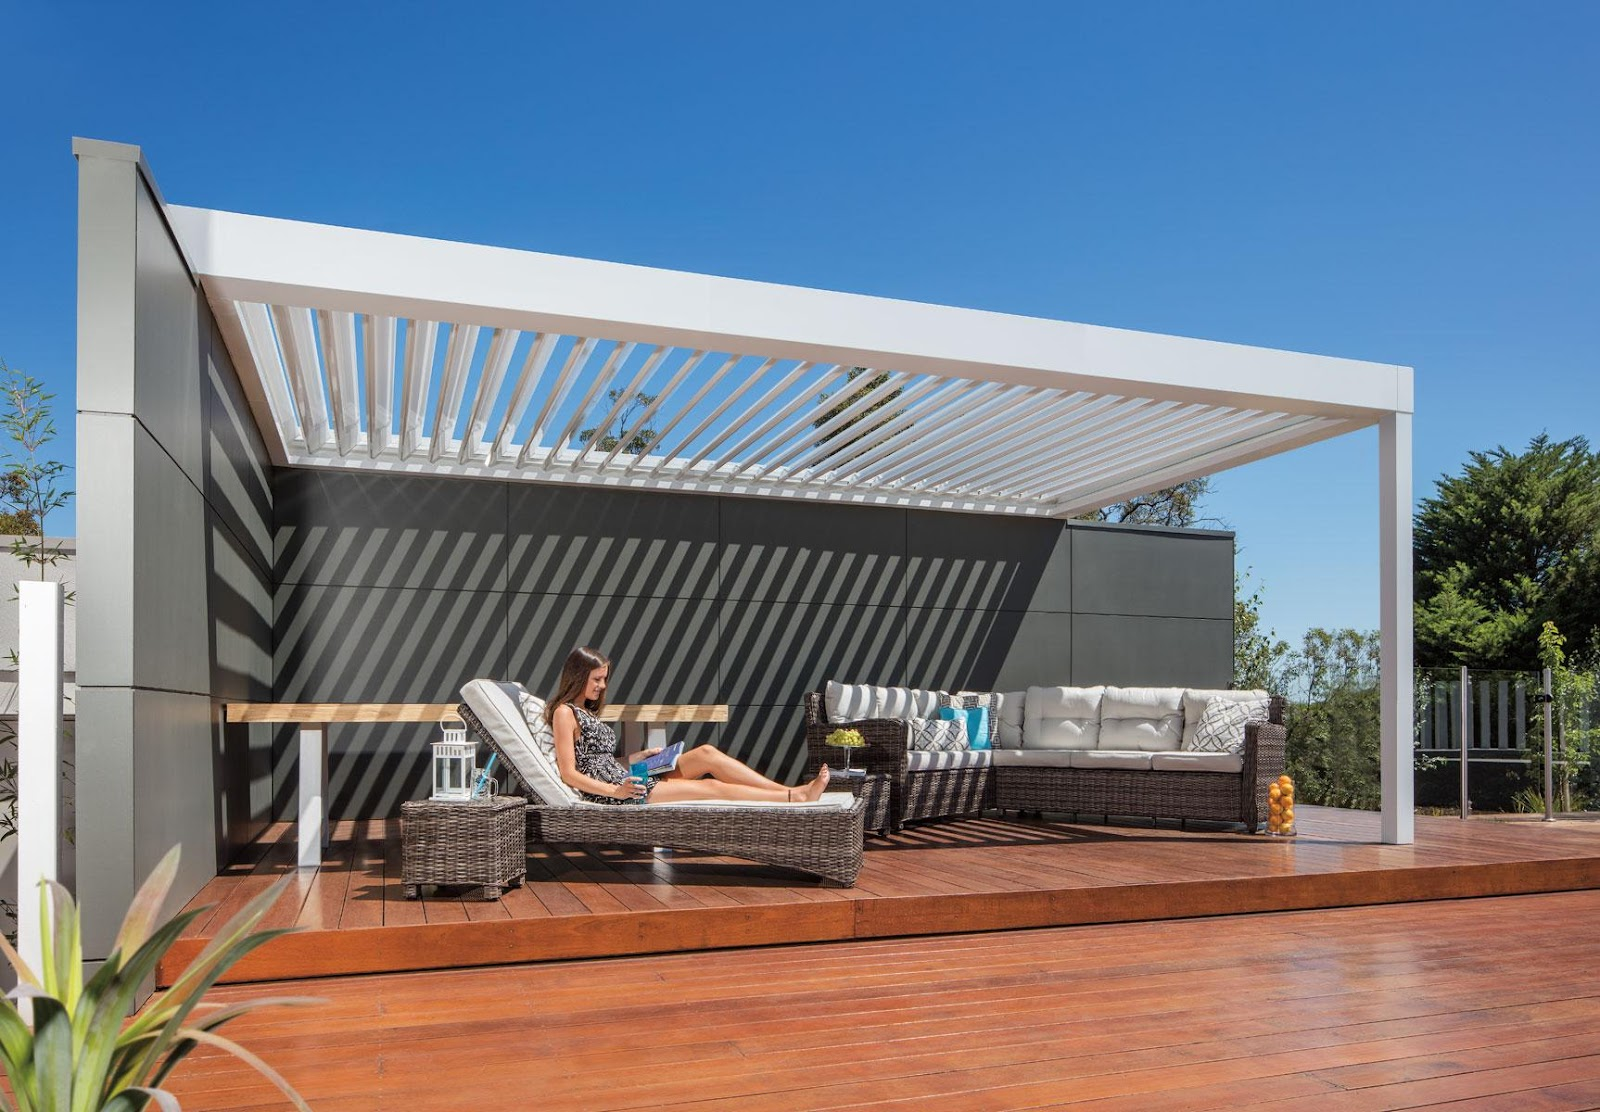 C:\Users\Nathaniel\Dropbox\A Dilate Digital\Outdoor Impressions - On and Off\Images\Patio_files\melbourne pergolas.jpg